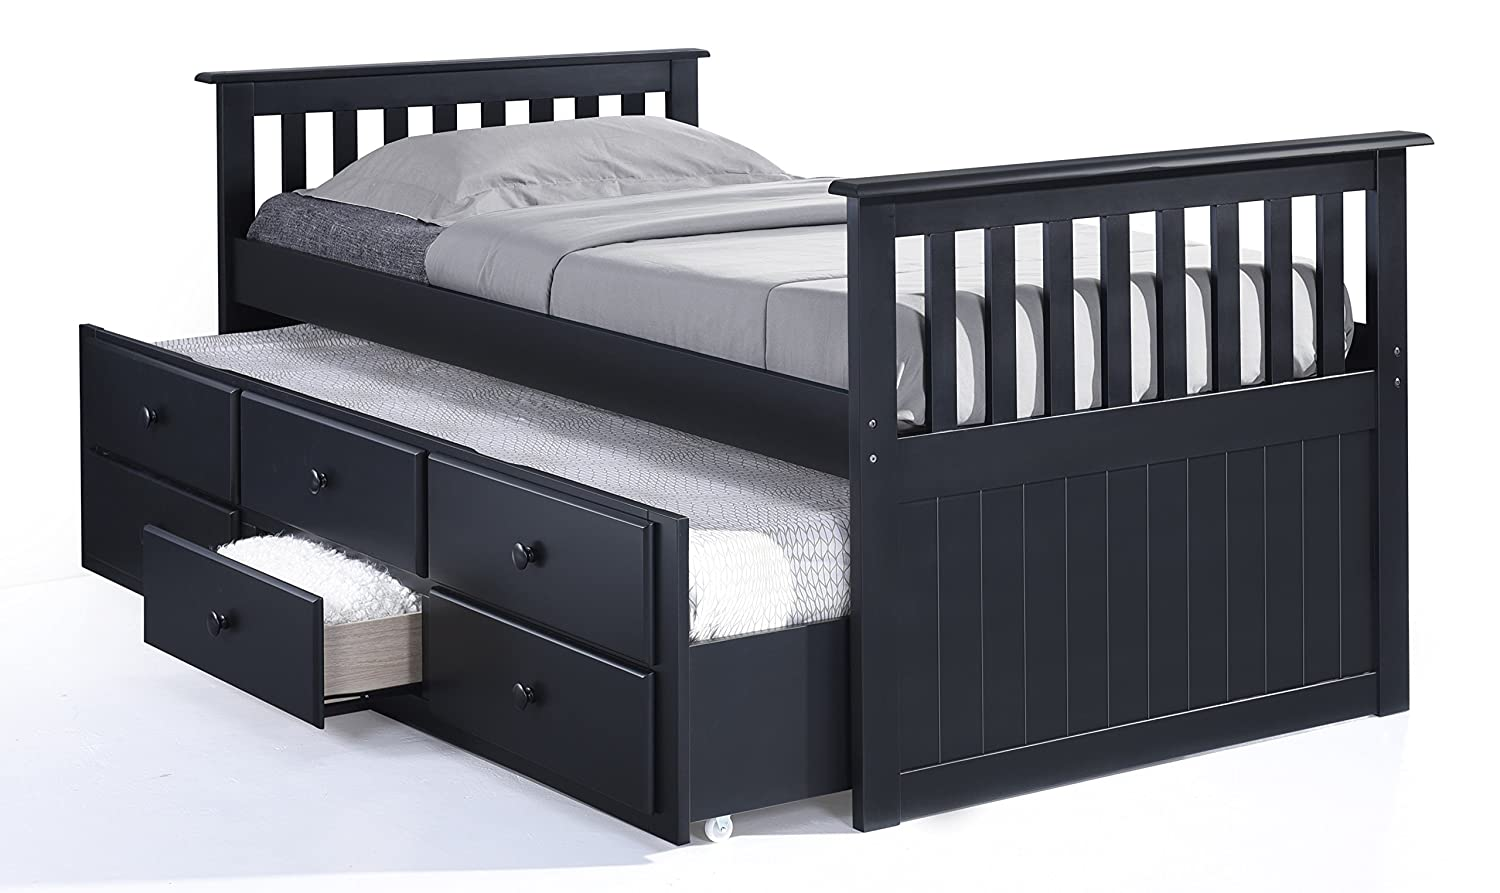 Captains beds black - Amazon Com Broyhill Kids Marco Island Captain S Bed With Trundle Bed And Drawers Twin Black Kitchen Dining